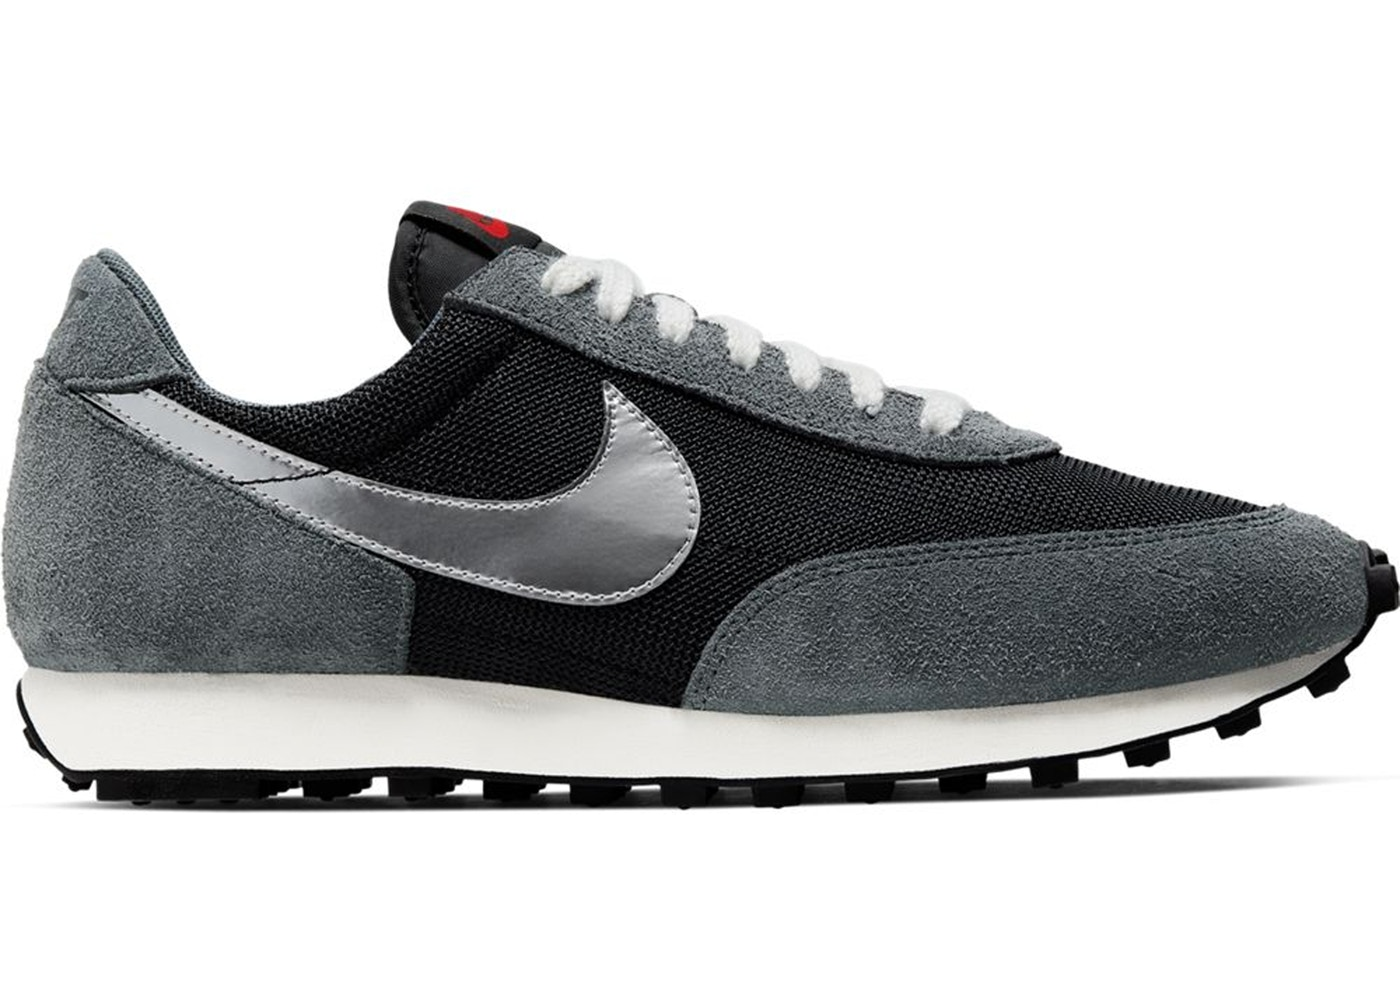 ナイキ NIKE スニーカー 【 DAYBREAK METALLIC SILVER BLACK SILVERDARK GREY 】 メンズ 送料無料